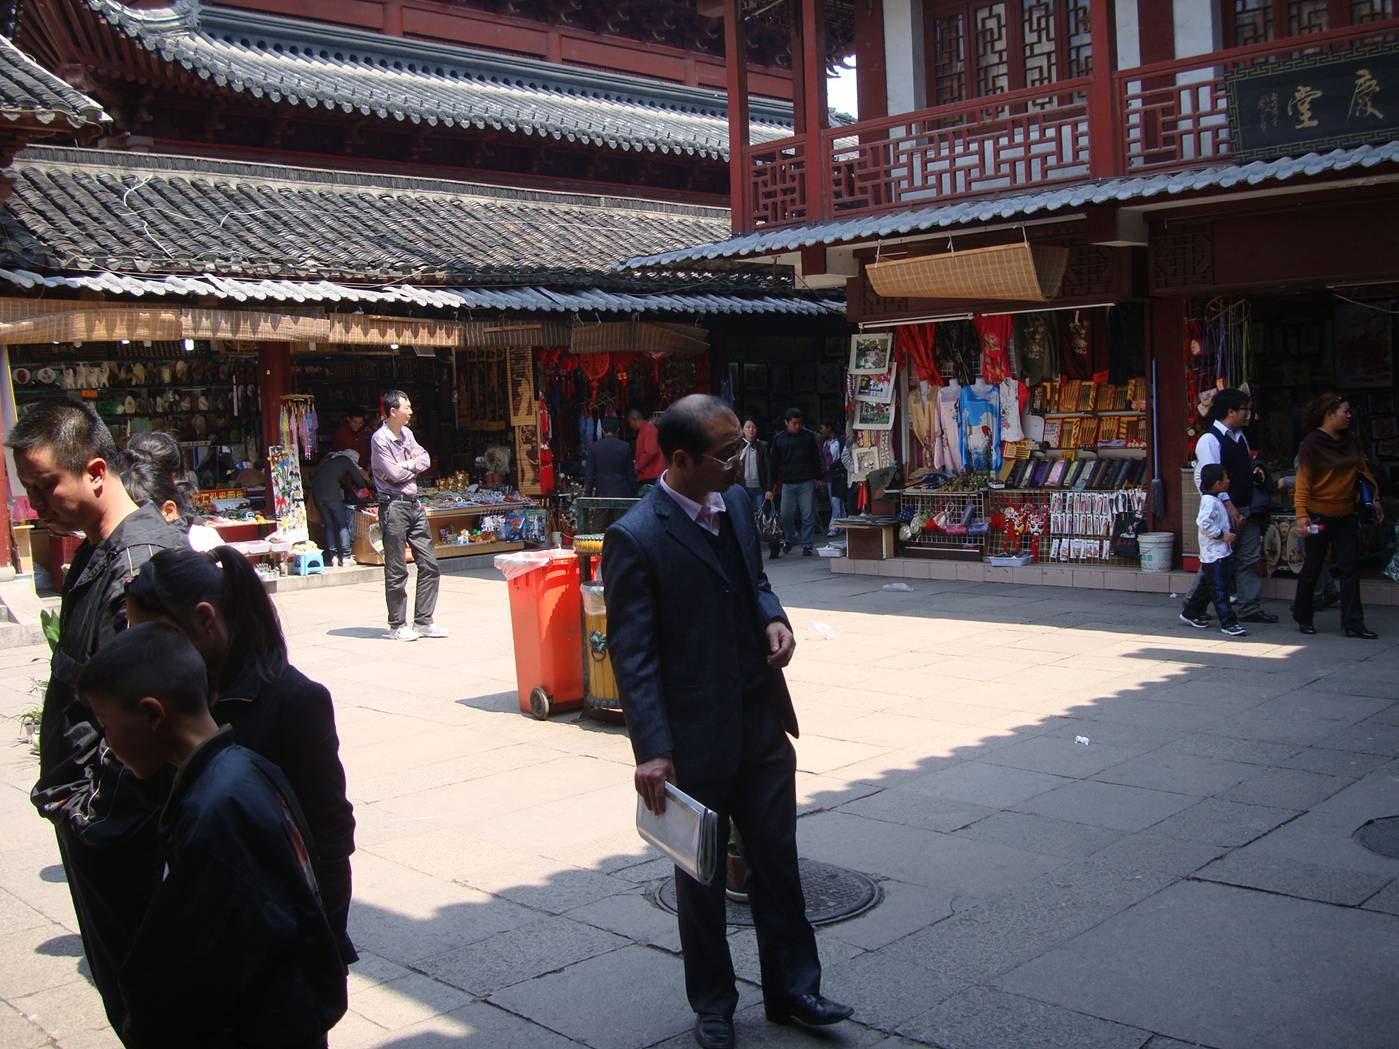 Temple market, Nanjing, China